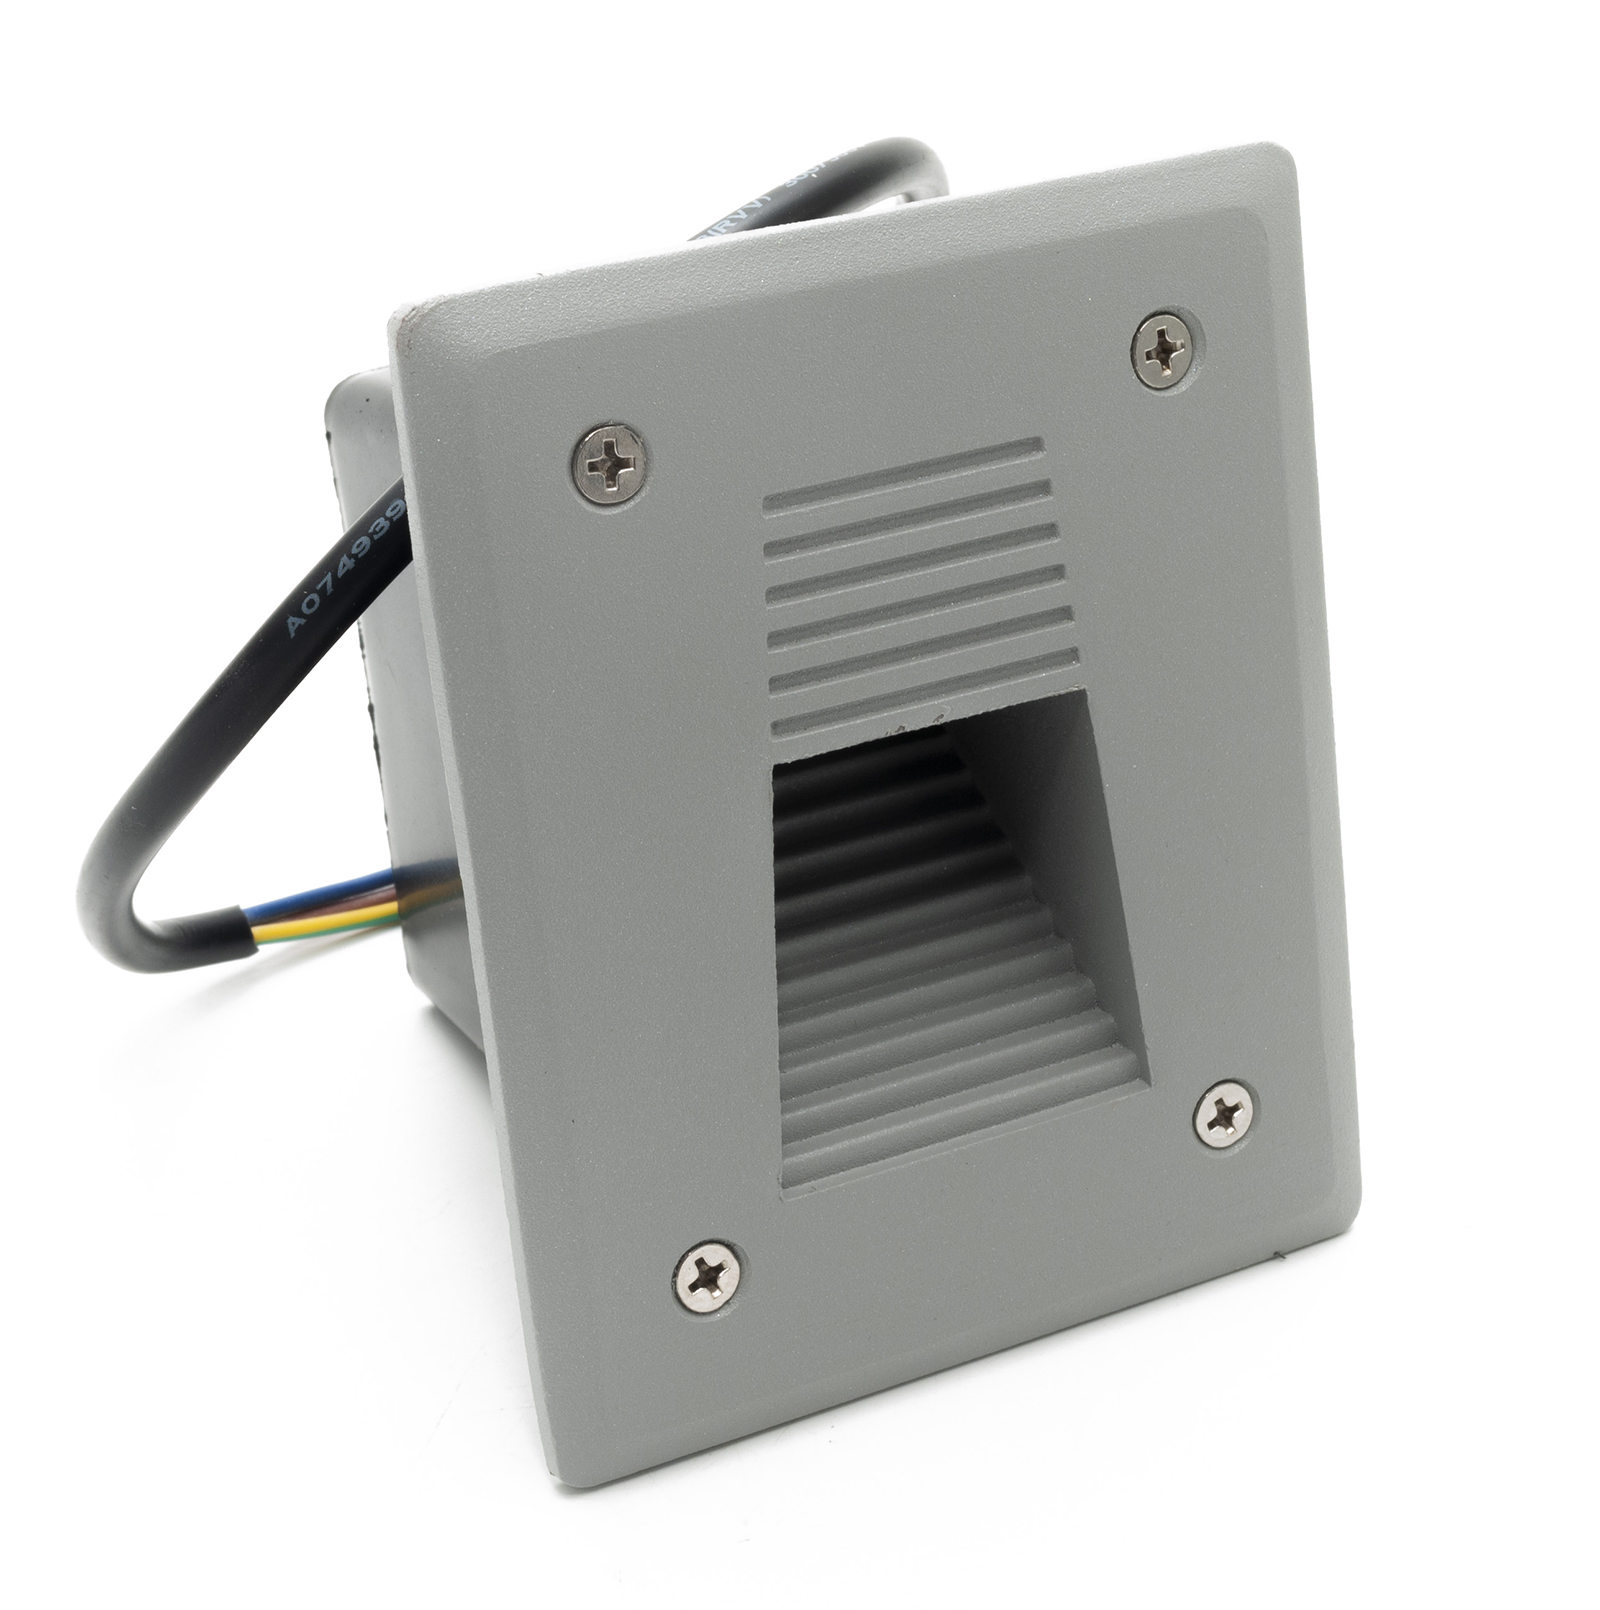 Path indicators external LED 2W low consumption flush-mounted wall wall garden-6000K IP65